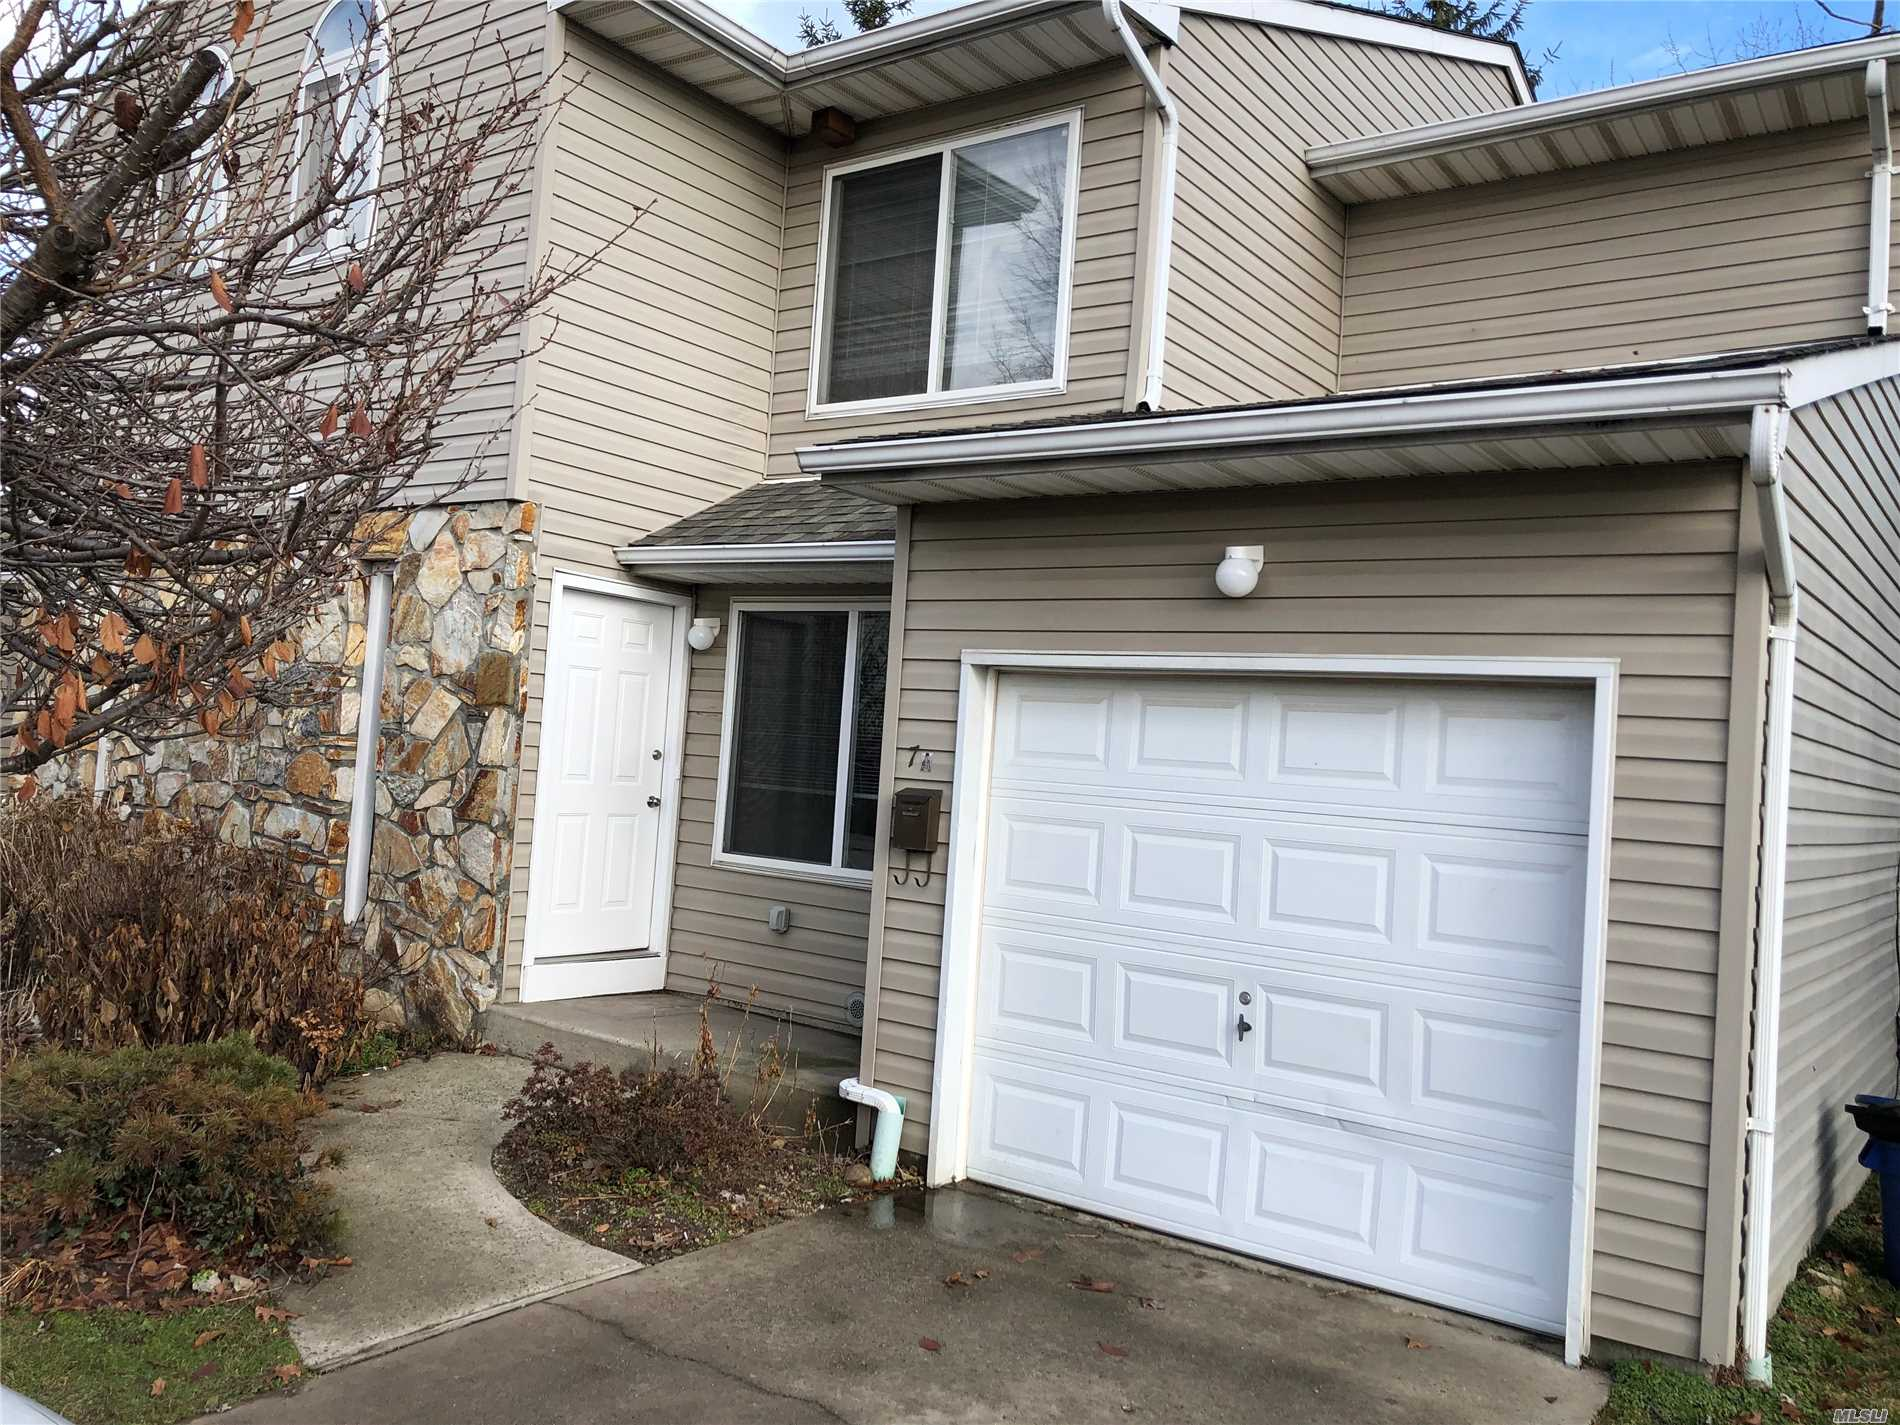 Spacious Duplex Featuring Lr/Dr, Eik And .5 Bath On First Floor. Upstairs Offers Mbr, Mbth, + 2 Bedrooms & Full Bath.